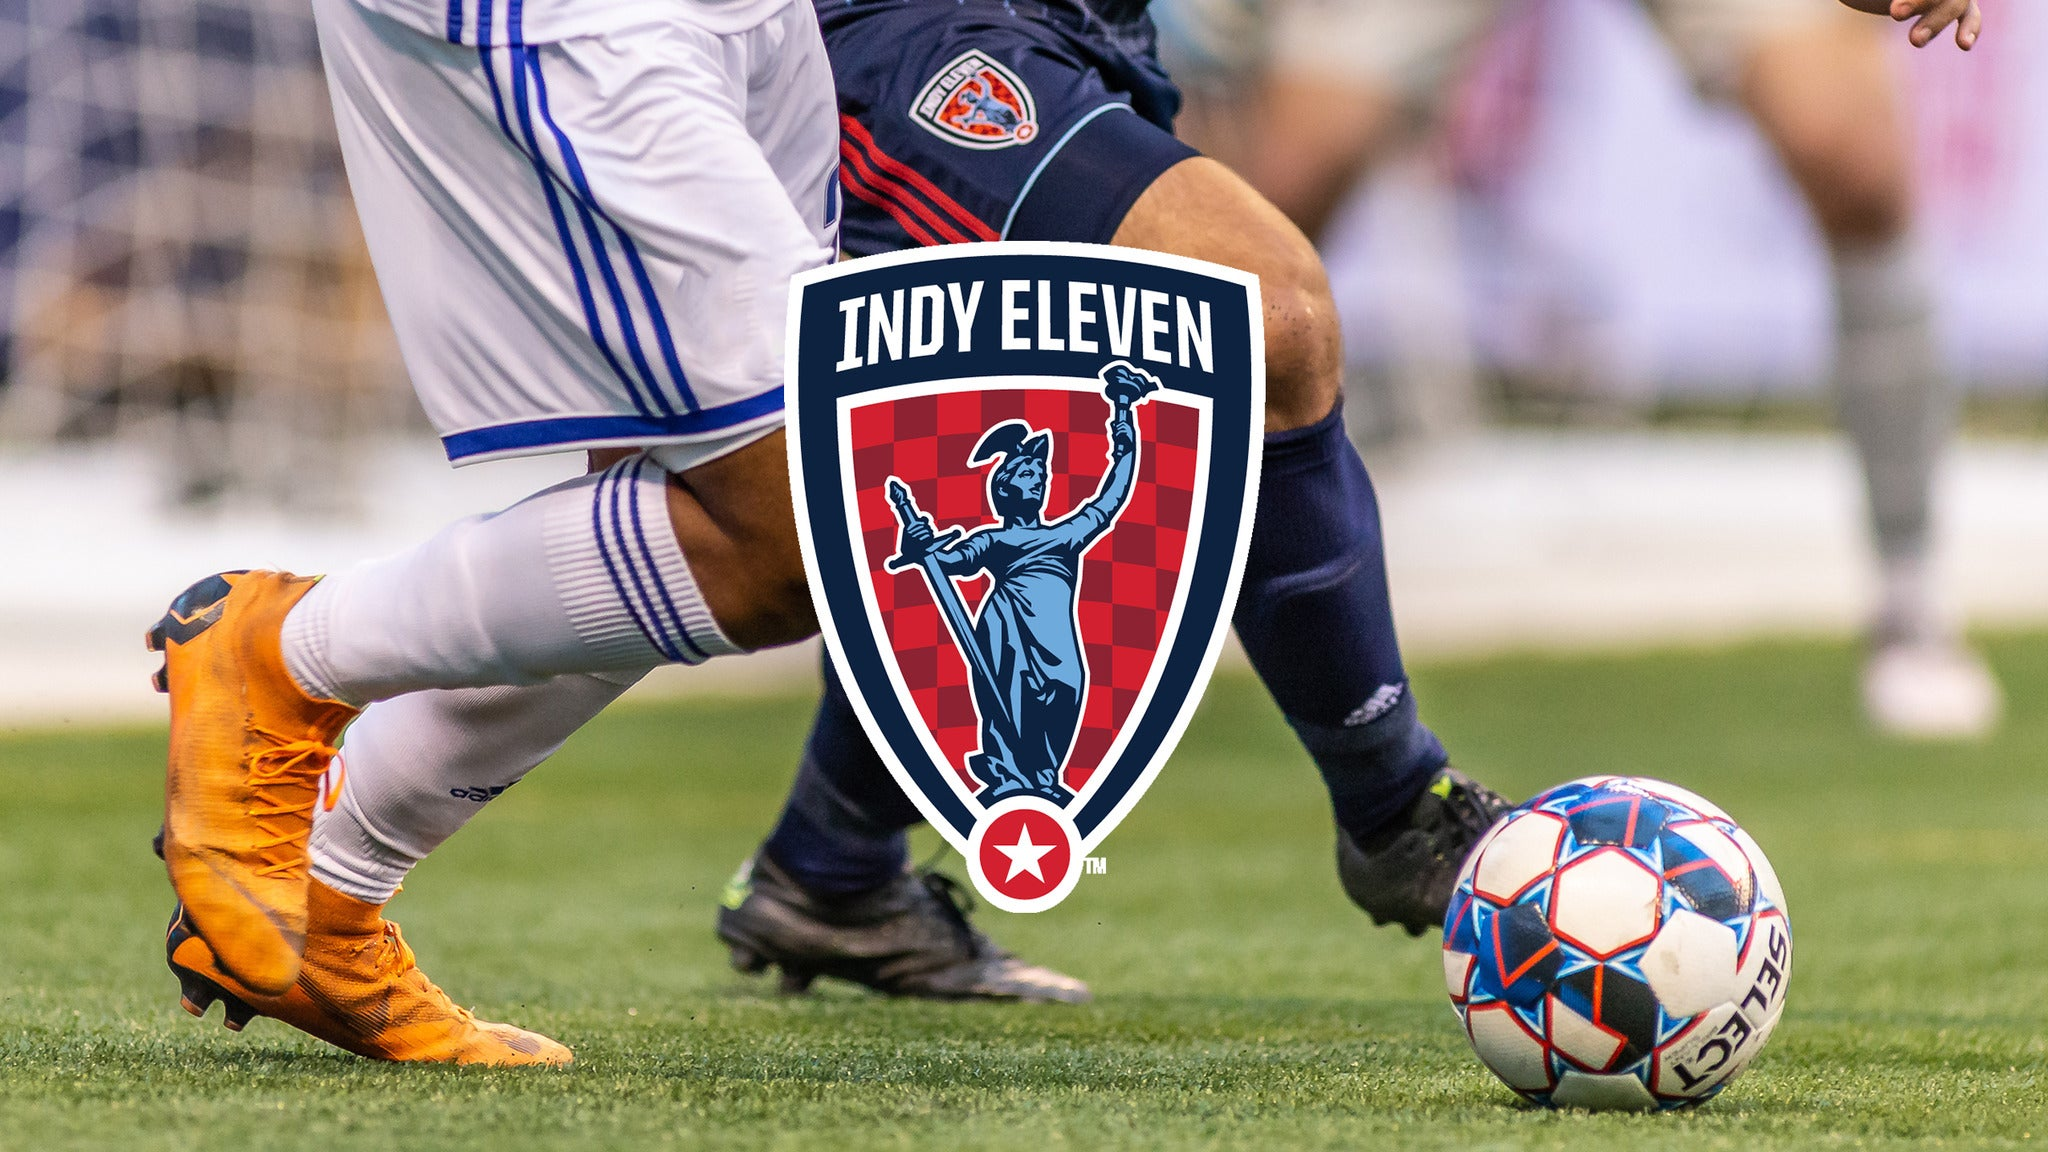 Bethlehem Steel FC at Indy Eleven at Lucas Oil Stadium